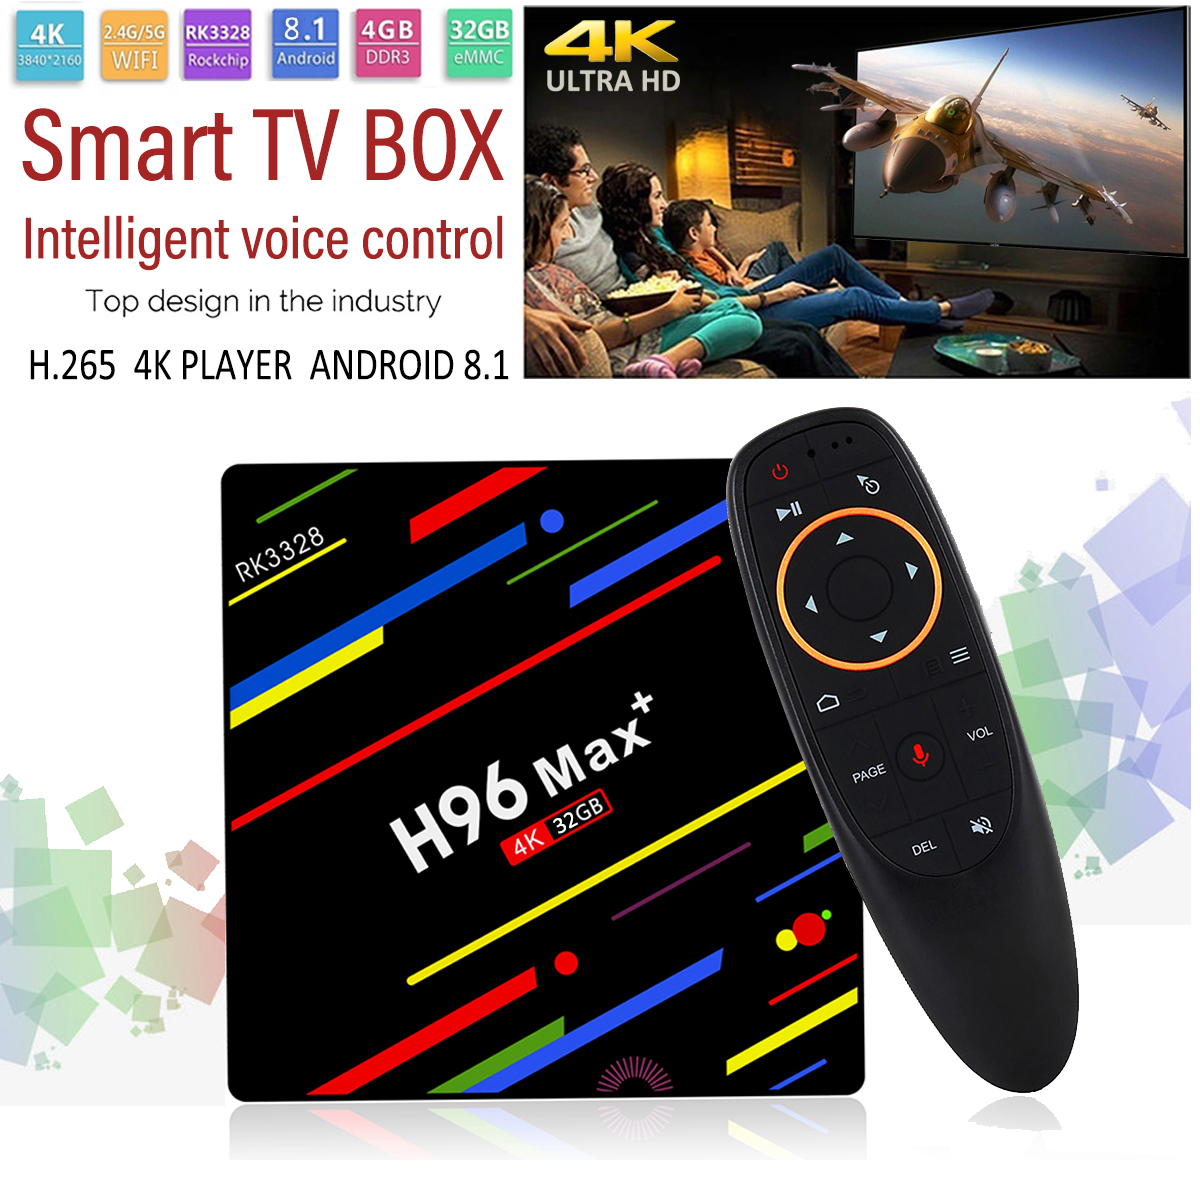 H96 Max Plus RK3328 4G/32G Android 8.1 USB3.0 Voice Control TV Box Support HD Netflix 4K  US